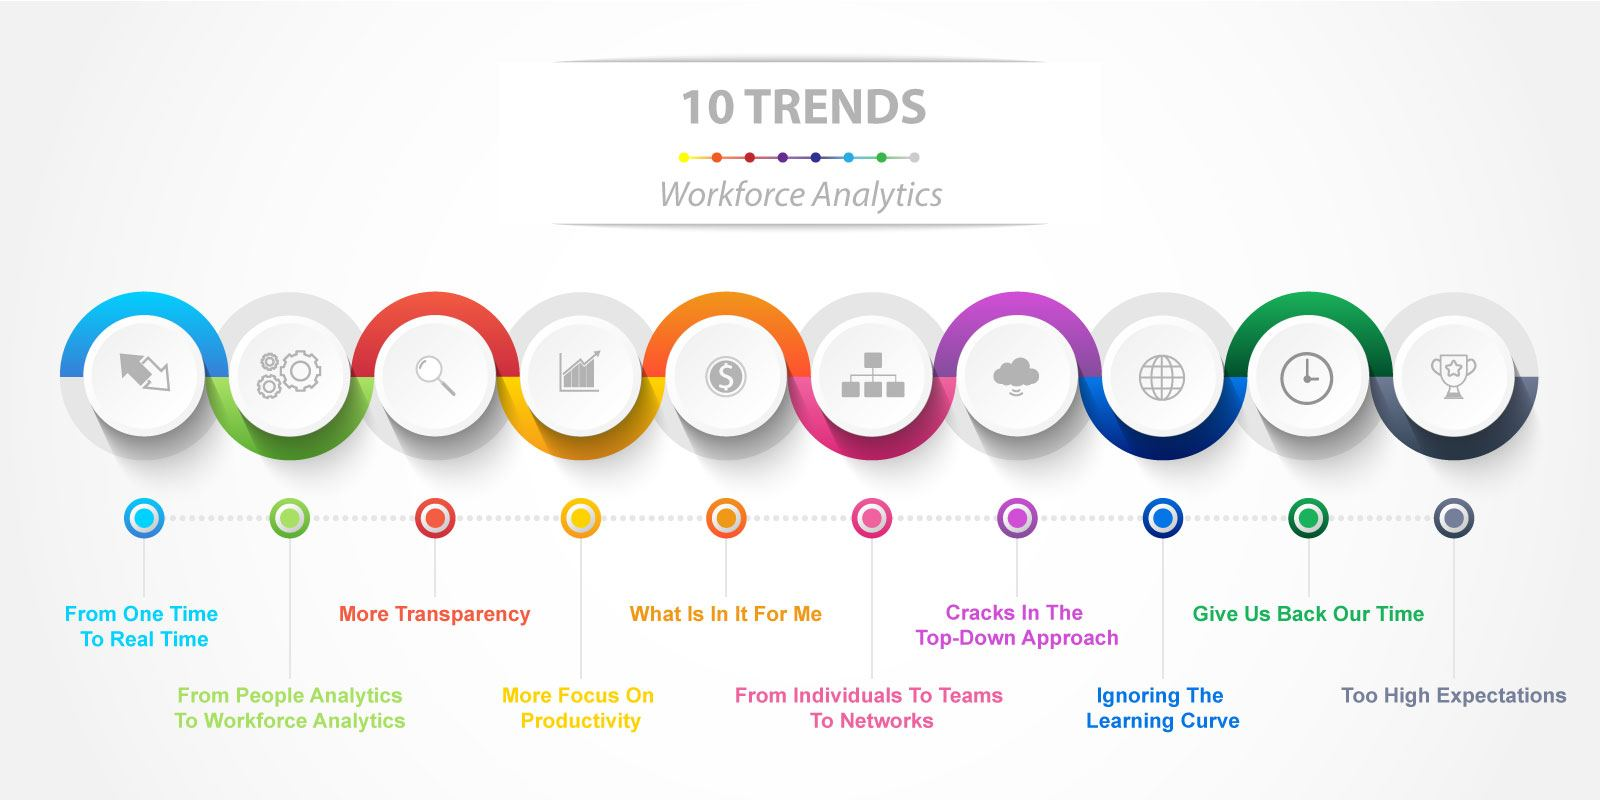 10 Trends in Workforce Analytics for 2019